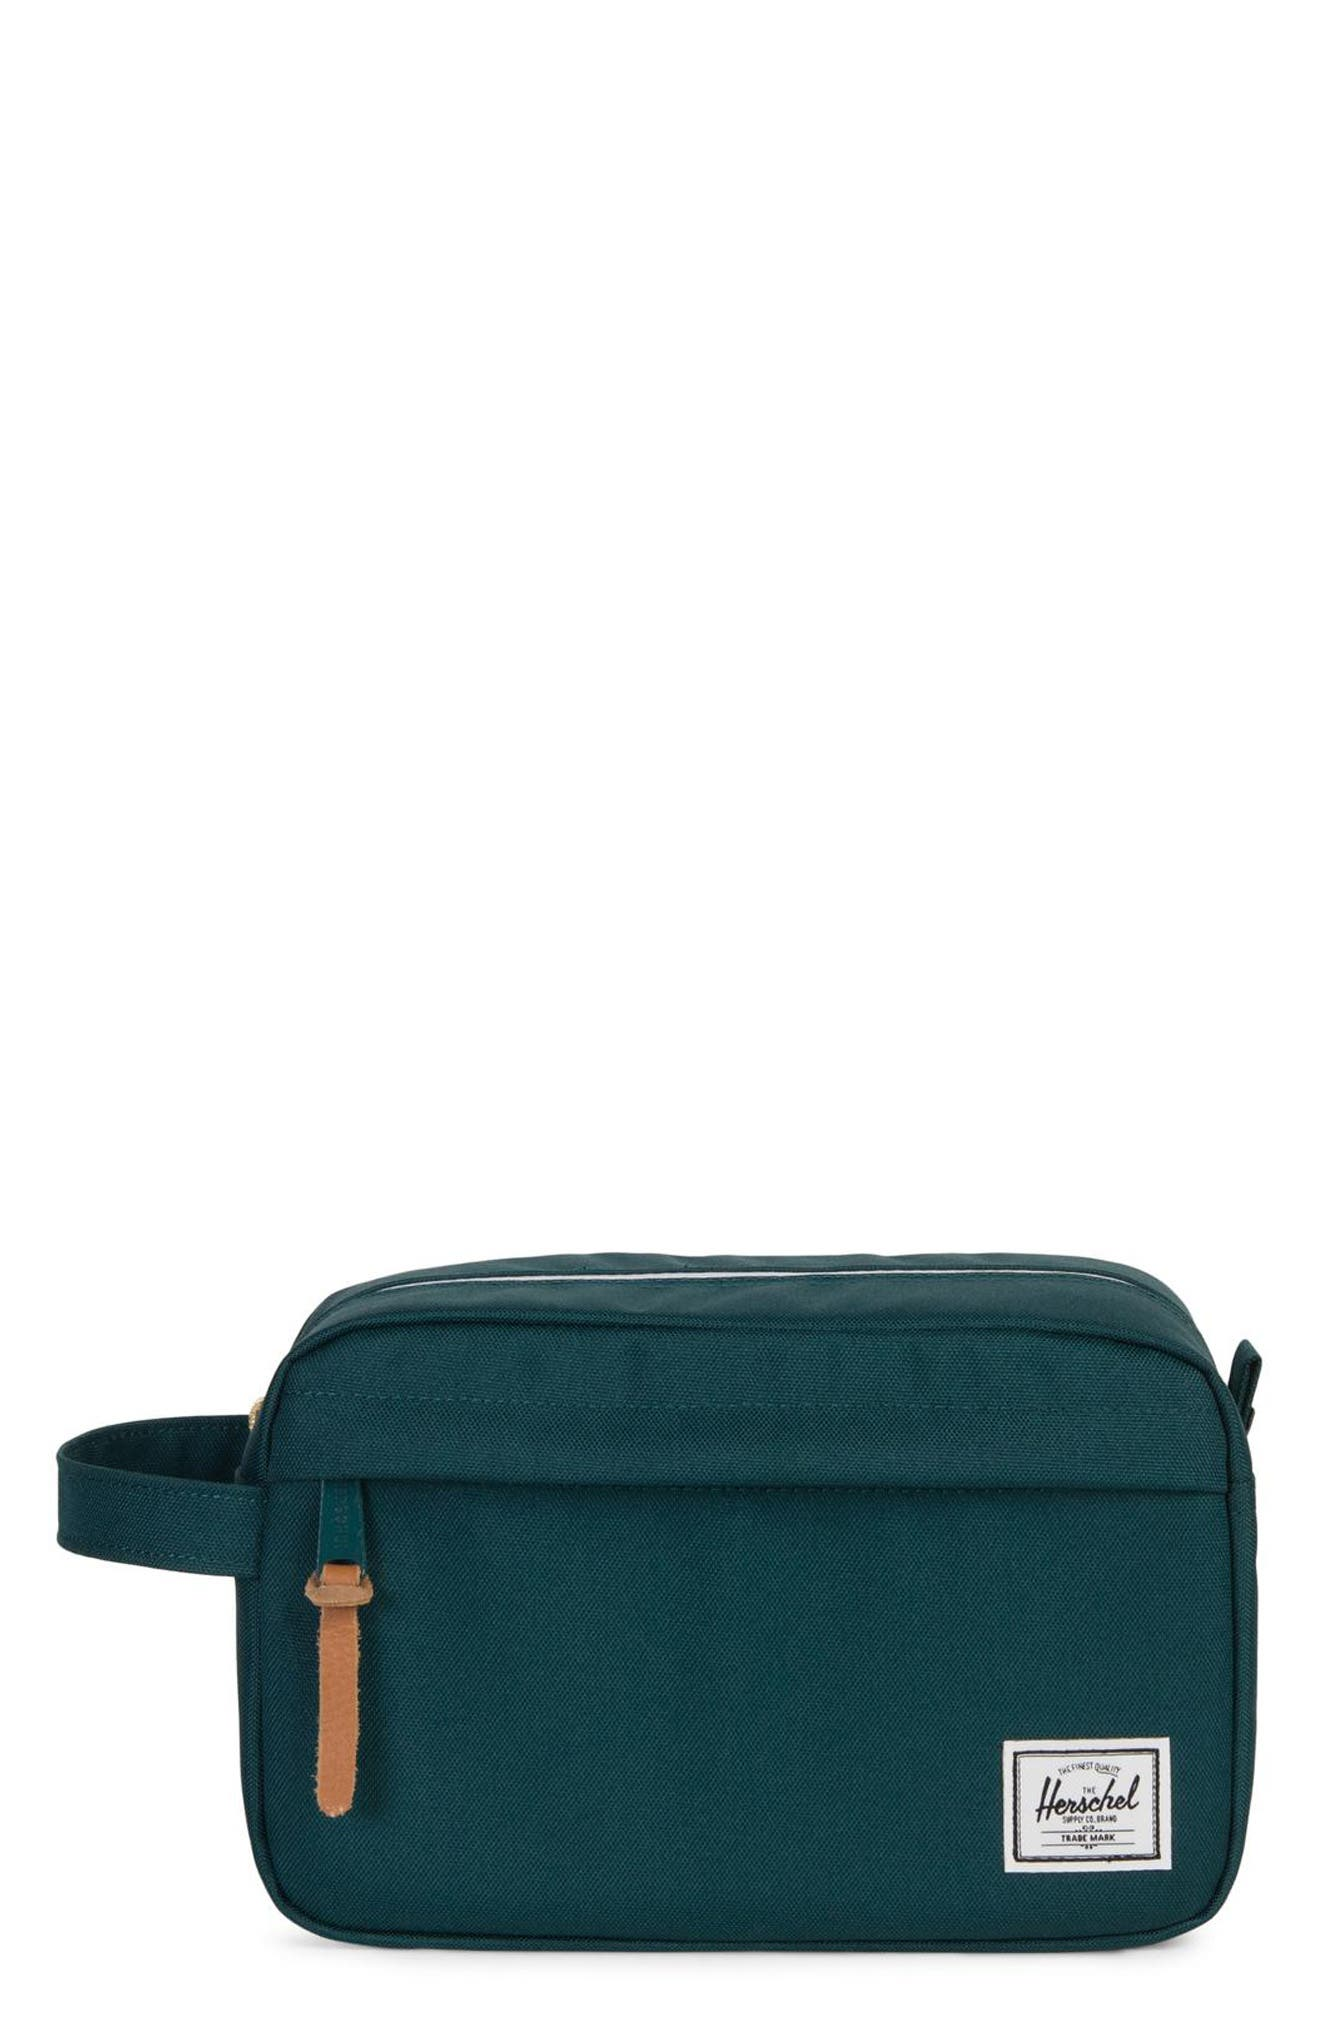 'Chapter' Toiletry Case,                         Main,                         color, DEEP TEAL